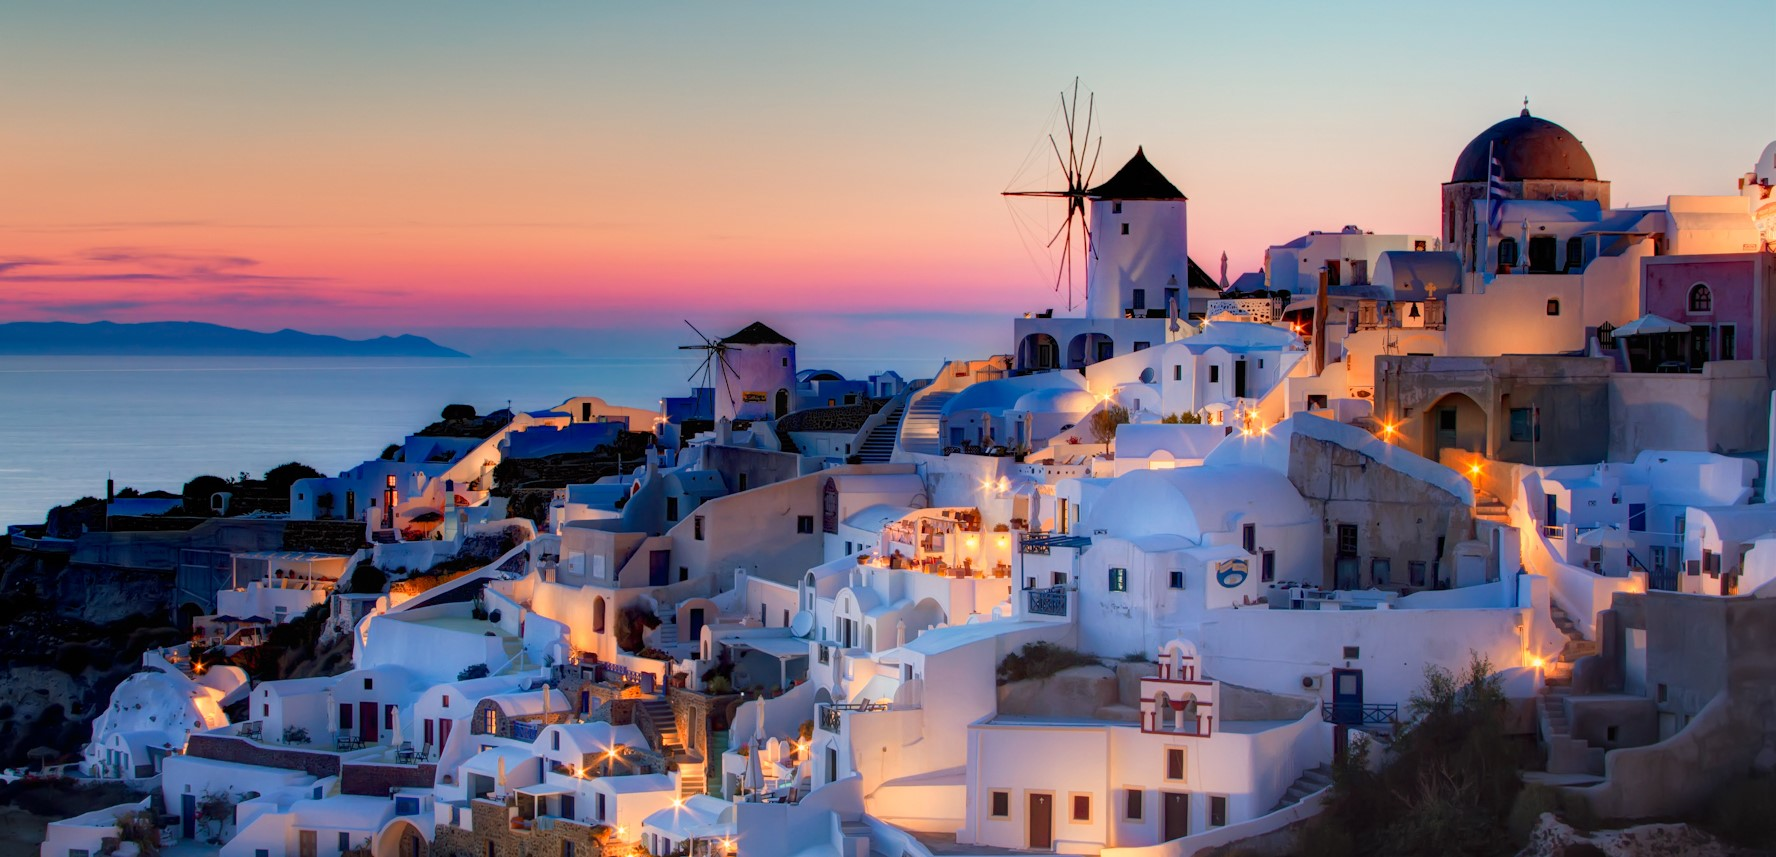 Oia Santorini sunset Wikimedia Commons res